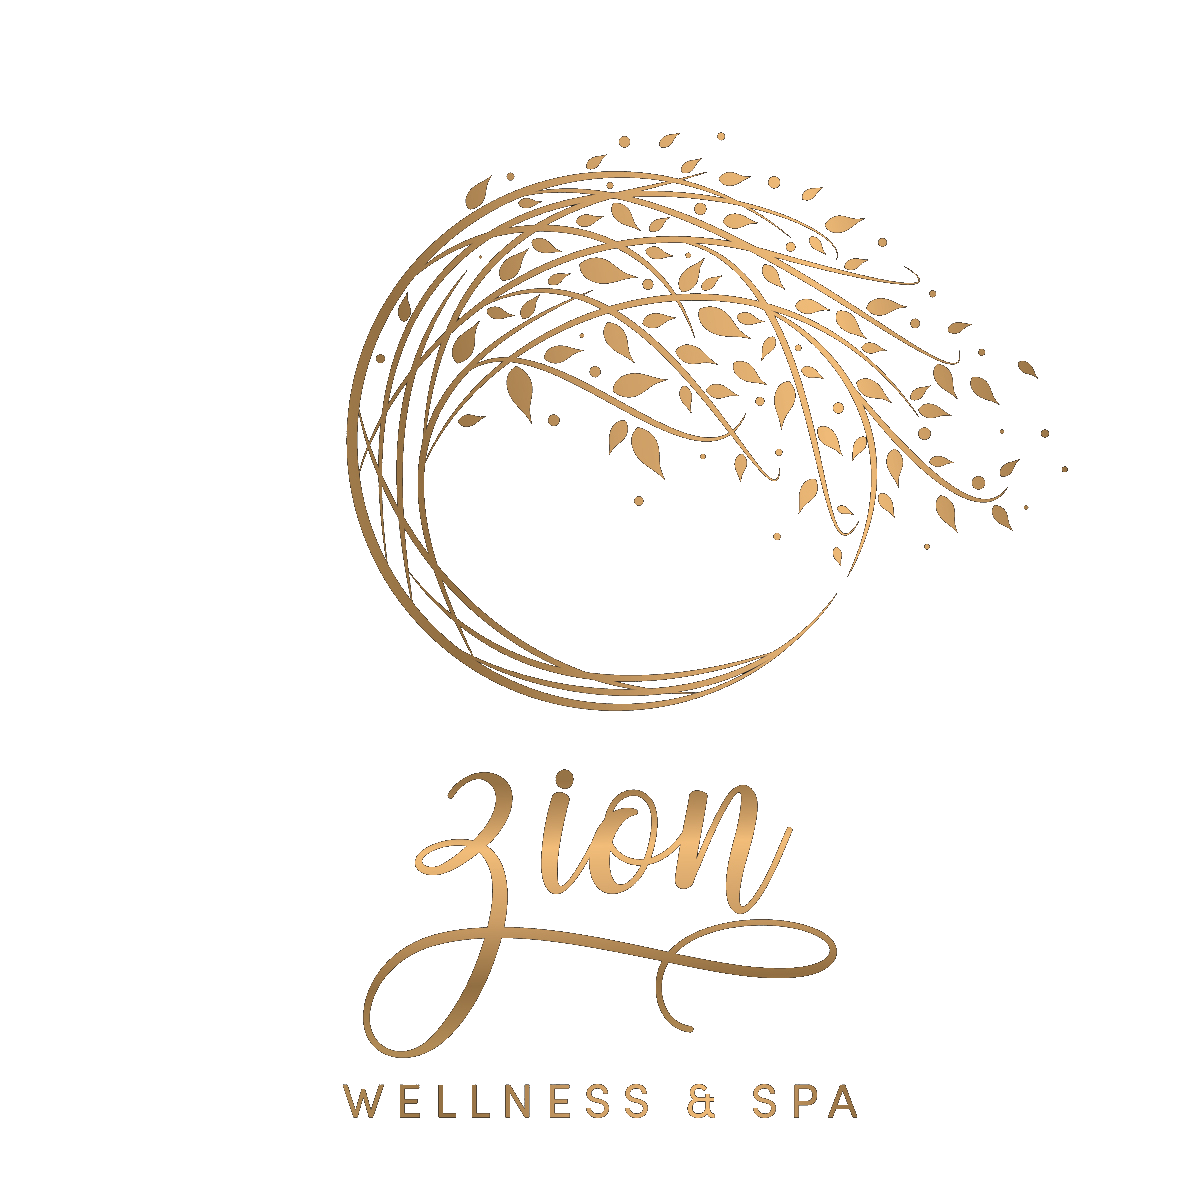 Zion Wellness and Spa - Check out all our services!